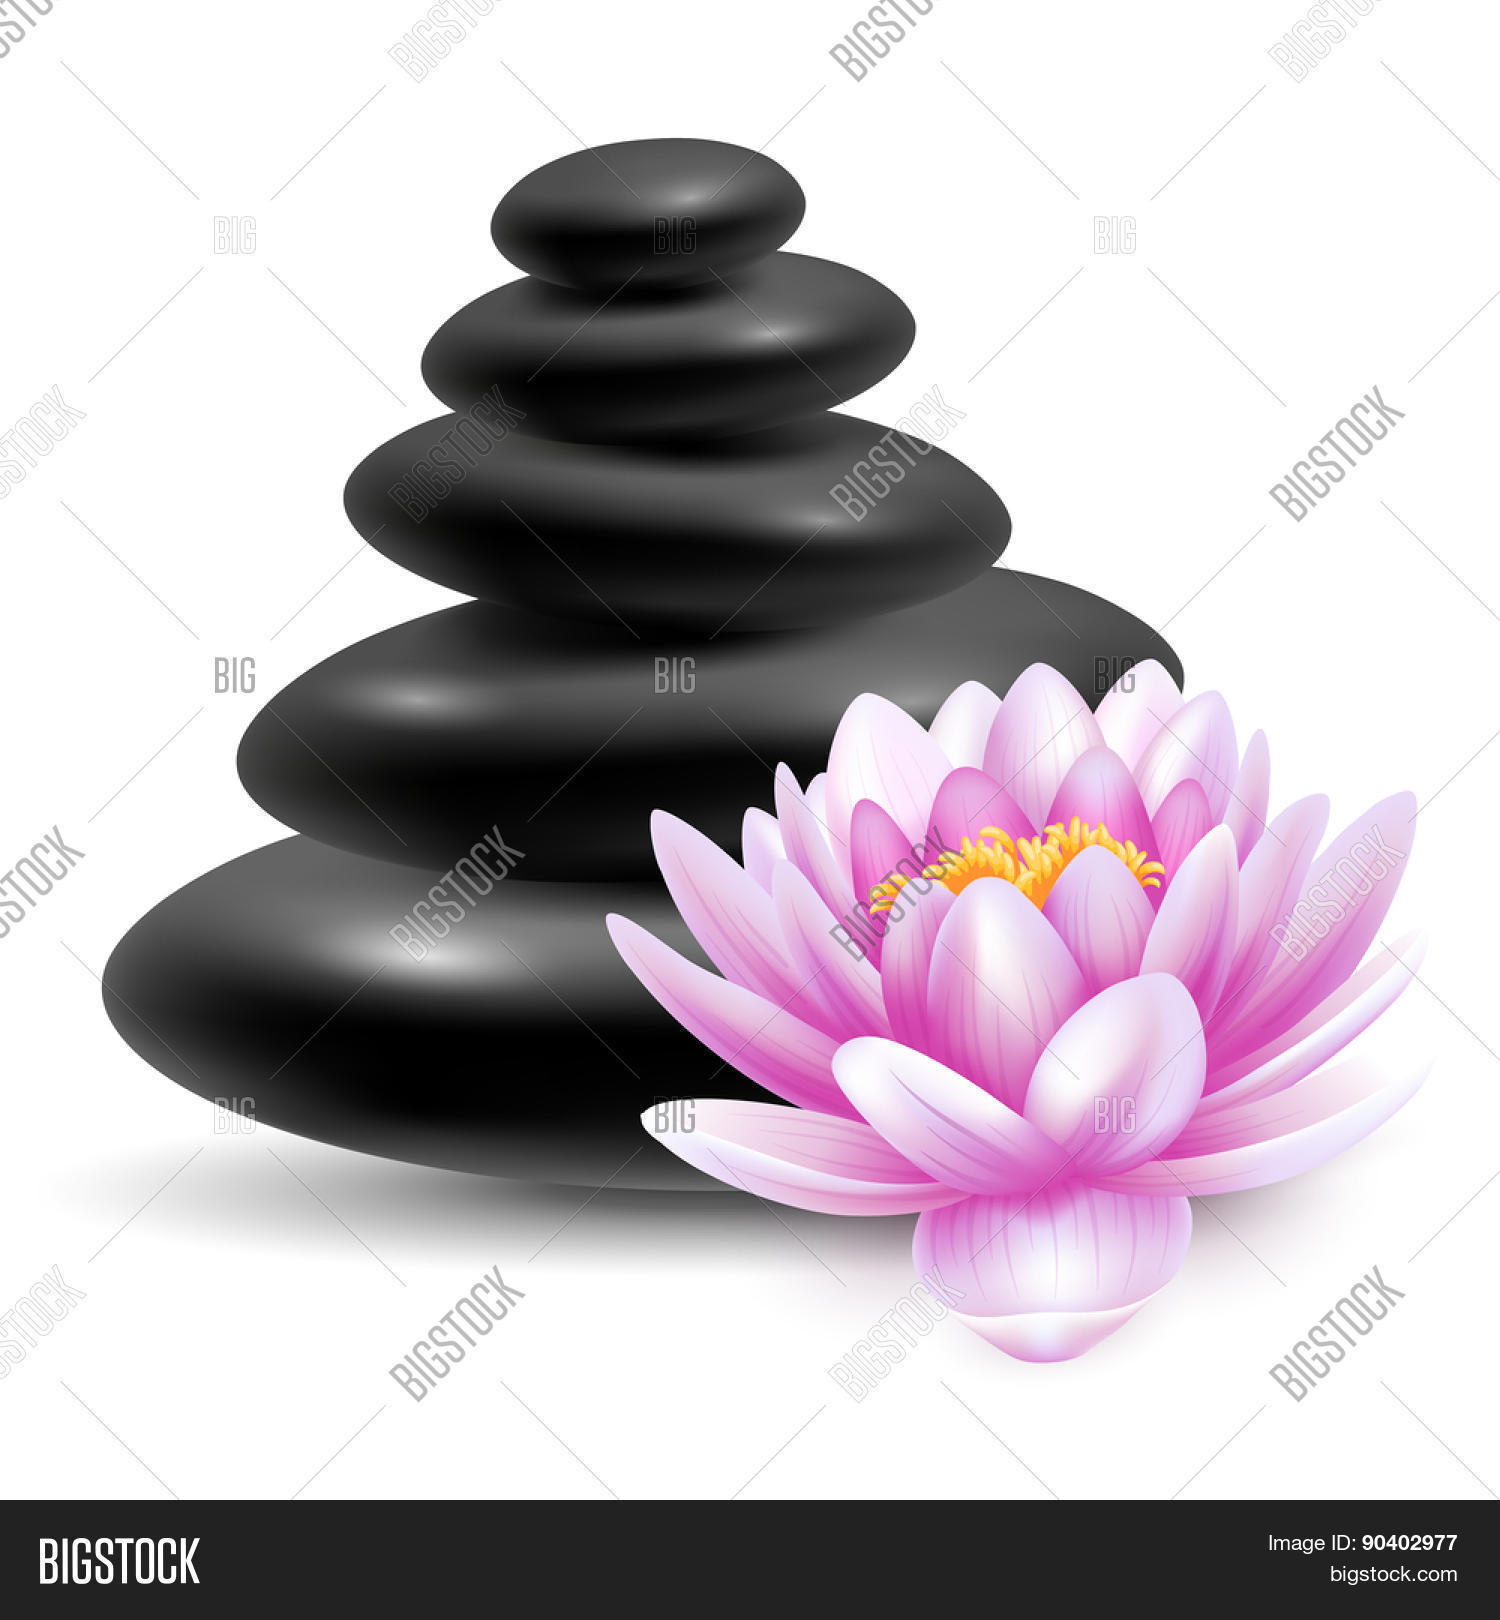 Spa still life black vector photo free trial bigstock spa still life with black massage stones and pink lotus flower vector illustration isolated izmirmasajfo